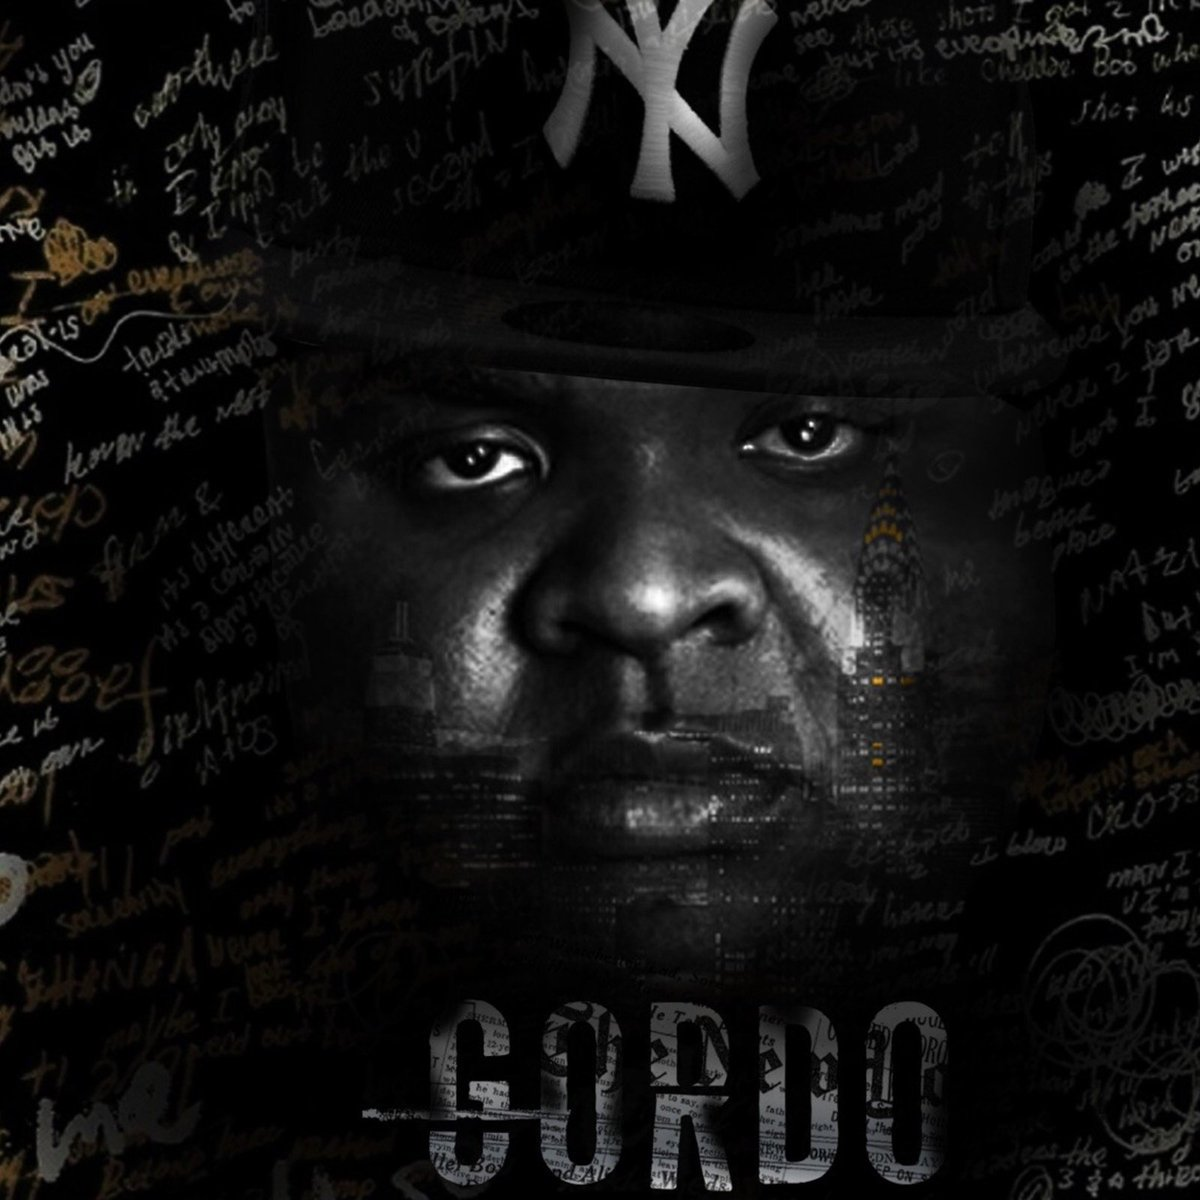 #Gordo available now! Check it here: https://t.co/fjoWJUXeTe https://t.co/kmuYMQ0TXf